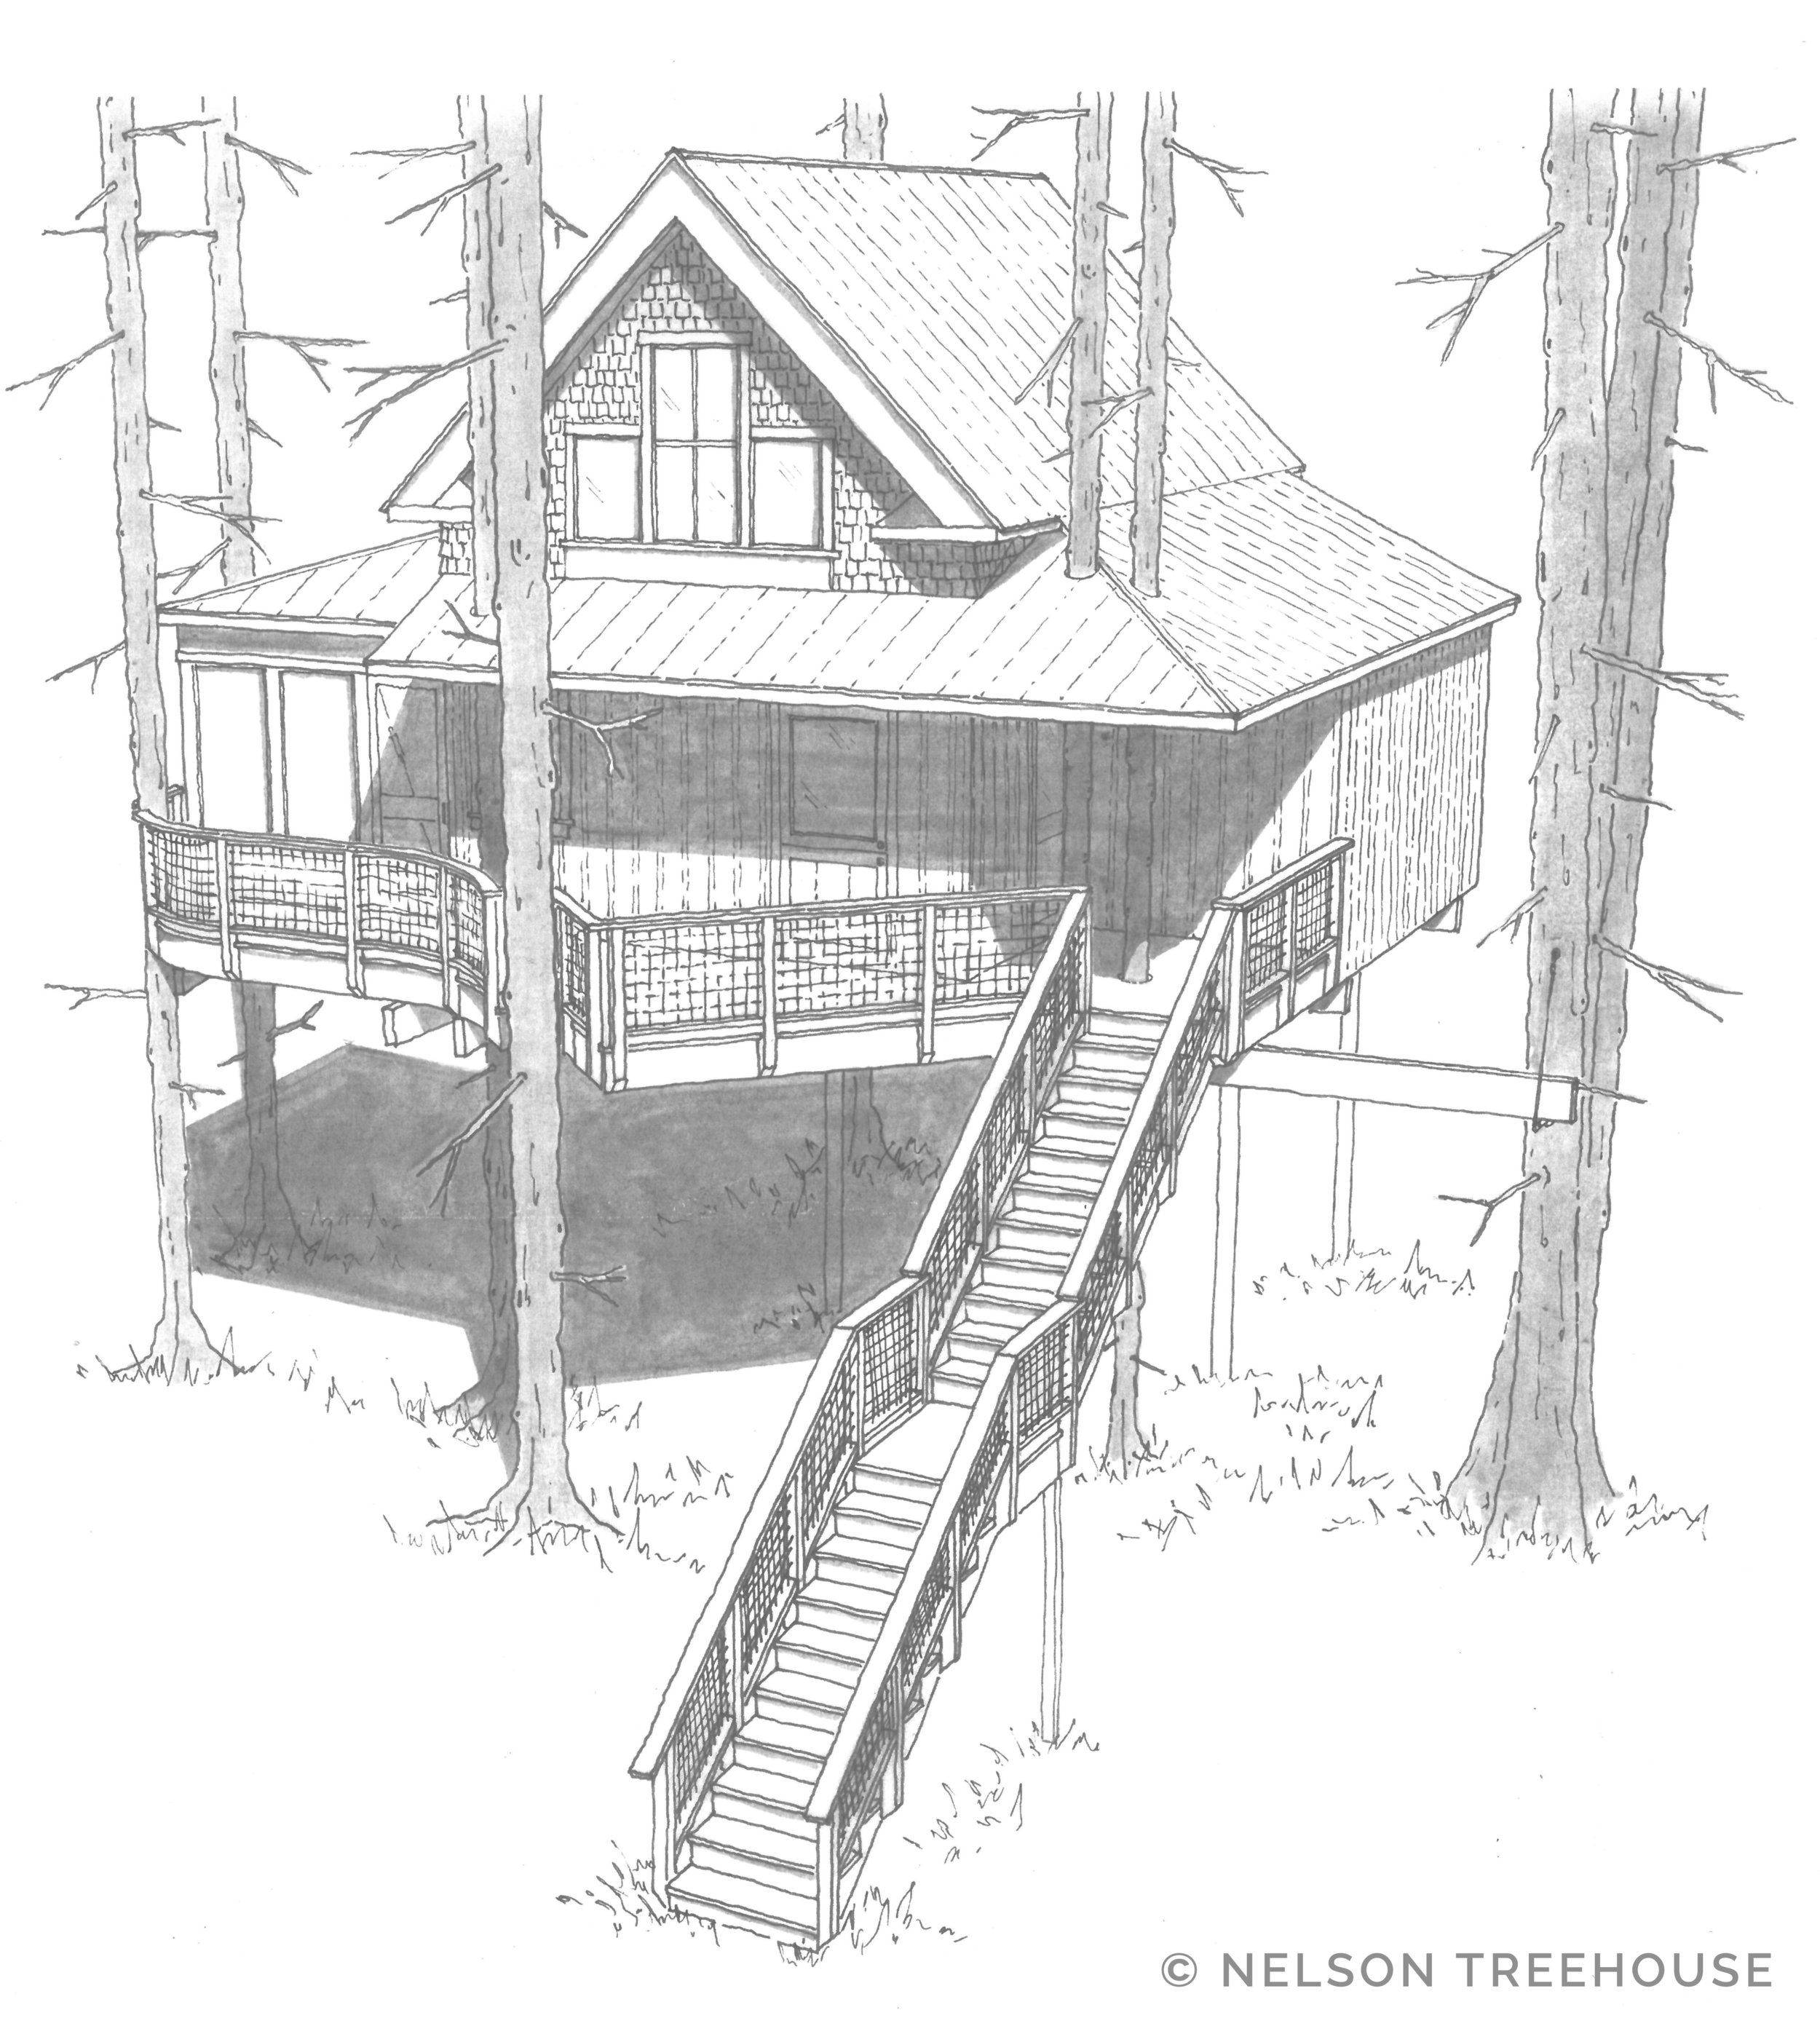 Our Design for the treehouse coming to The Woods, Maine.